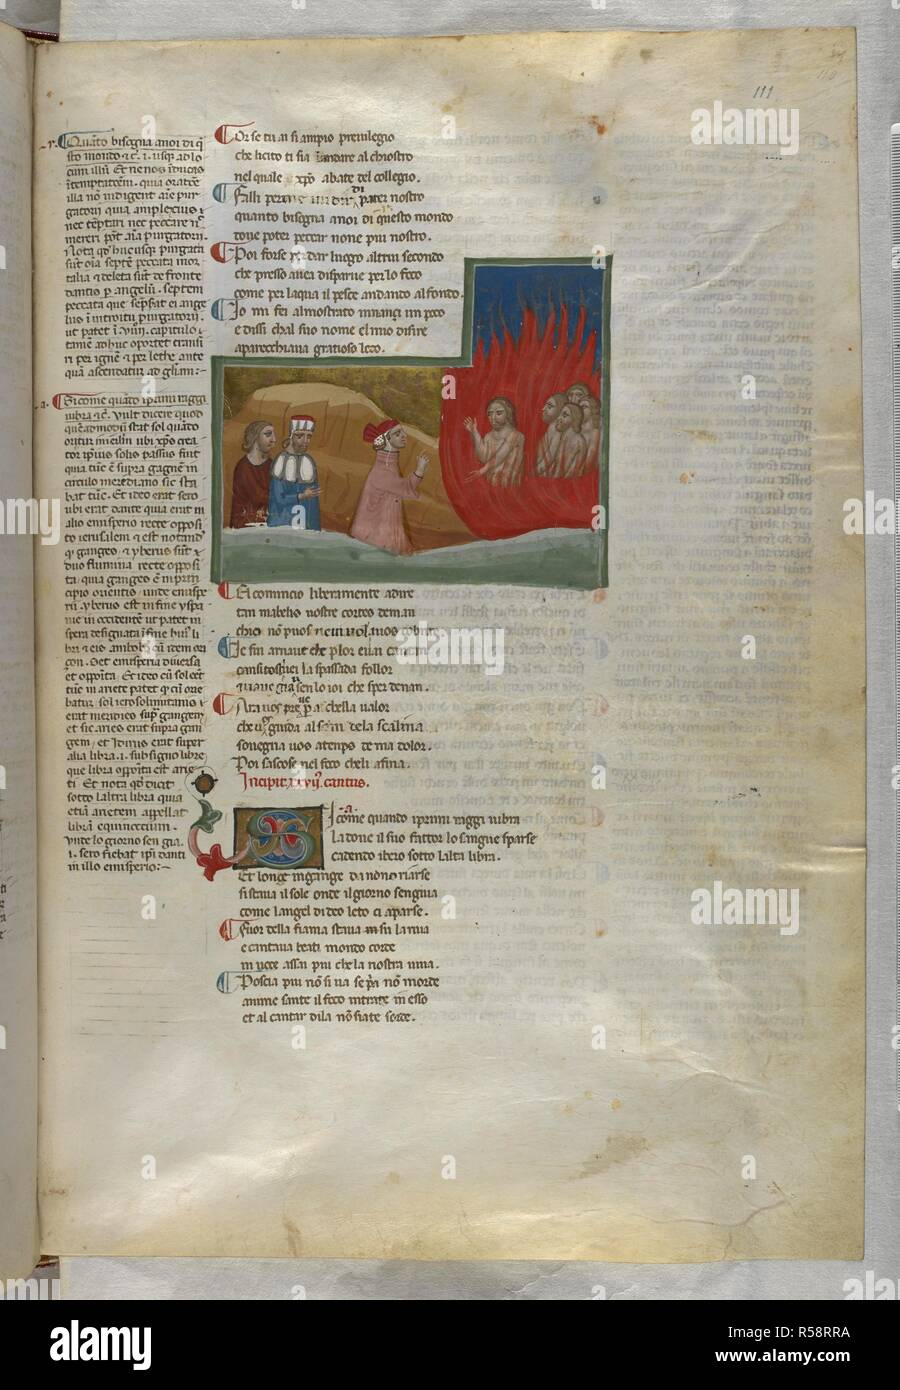 Dante, talking to one of the lustful, is followed by Statius and Virgil. Dante Alighieri, Divina Commedia ( The Divine Comedy ), with a commentary in Latin. 1st half of the 14th century. Source: Egerton 943, f.111. Language: Italian, Latin. - Stock Image